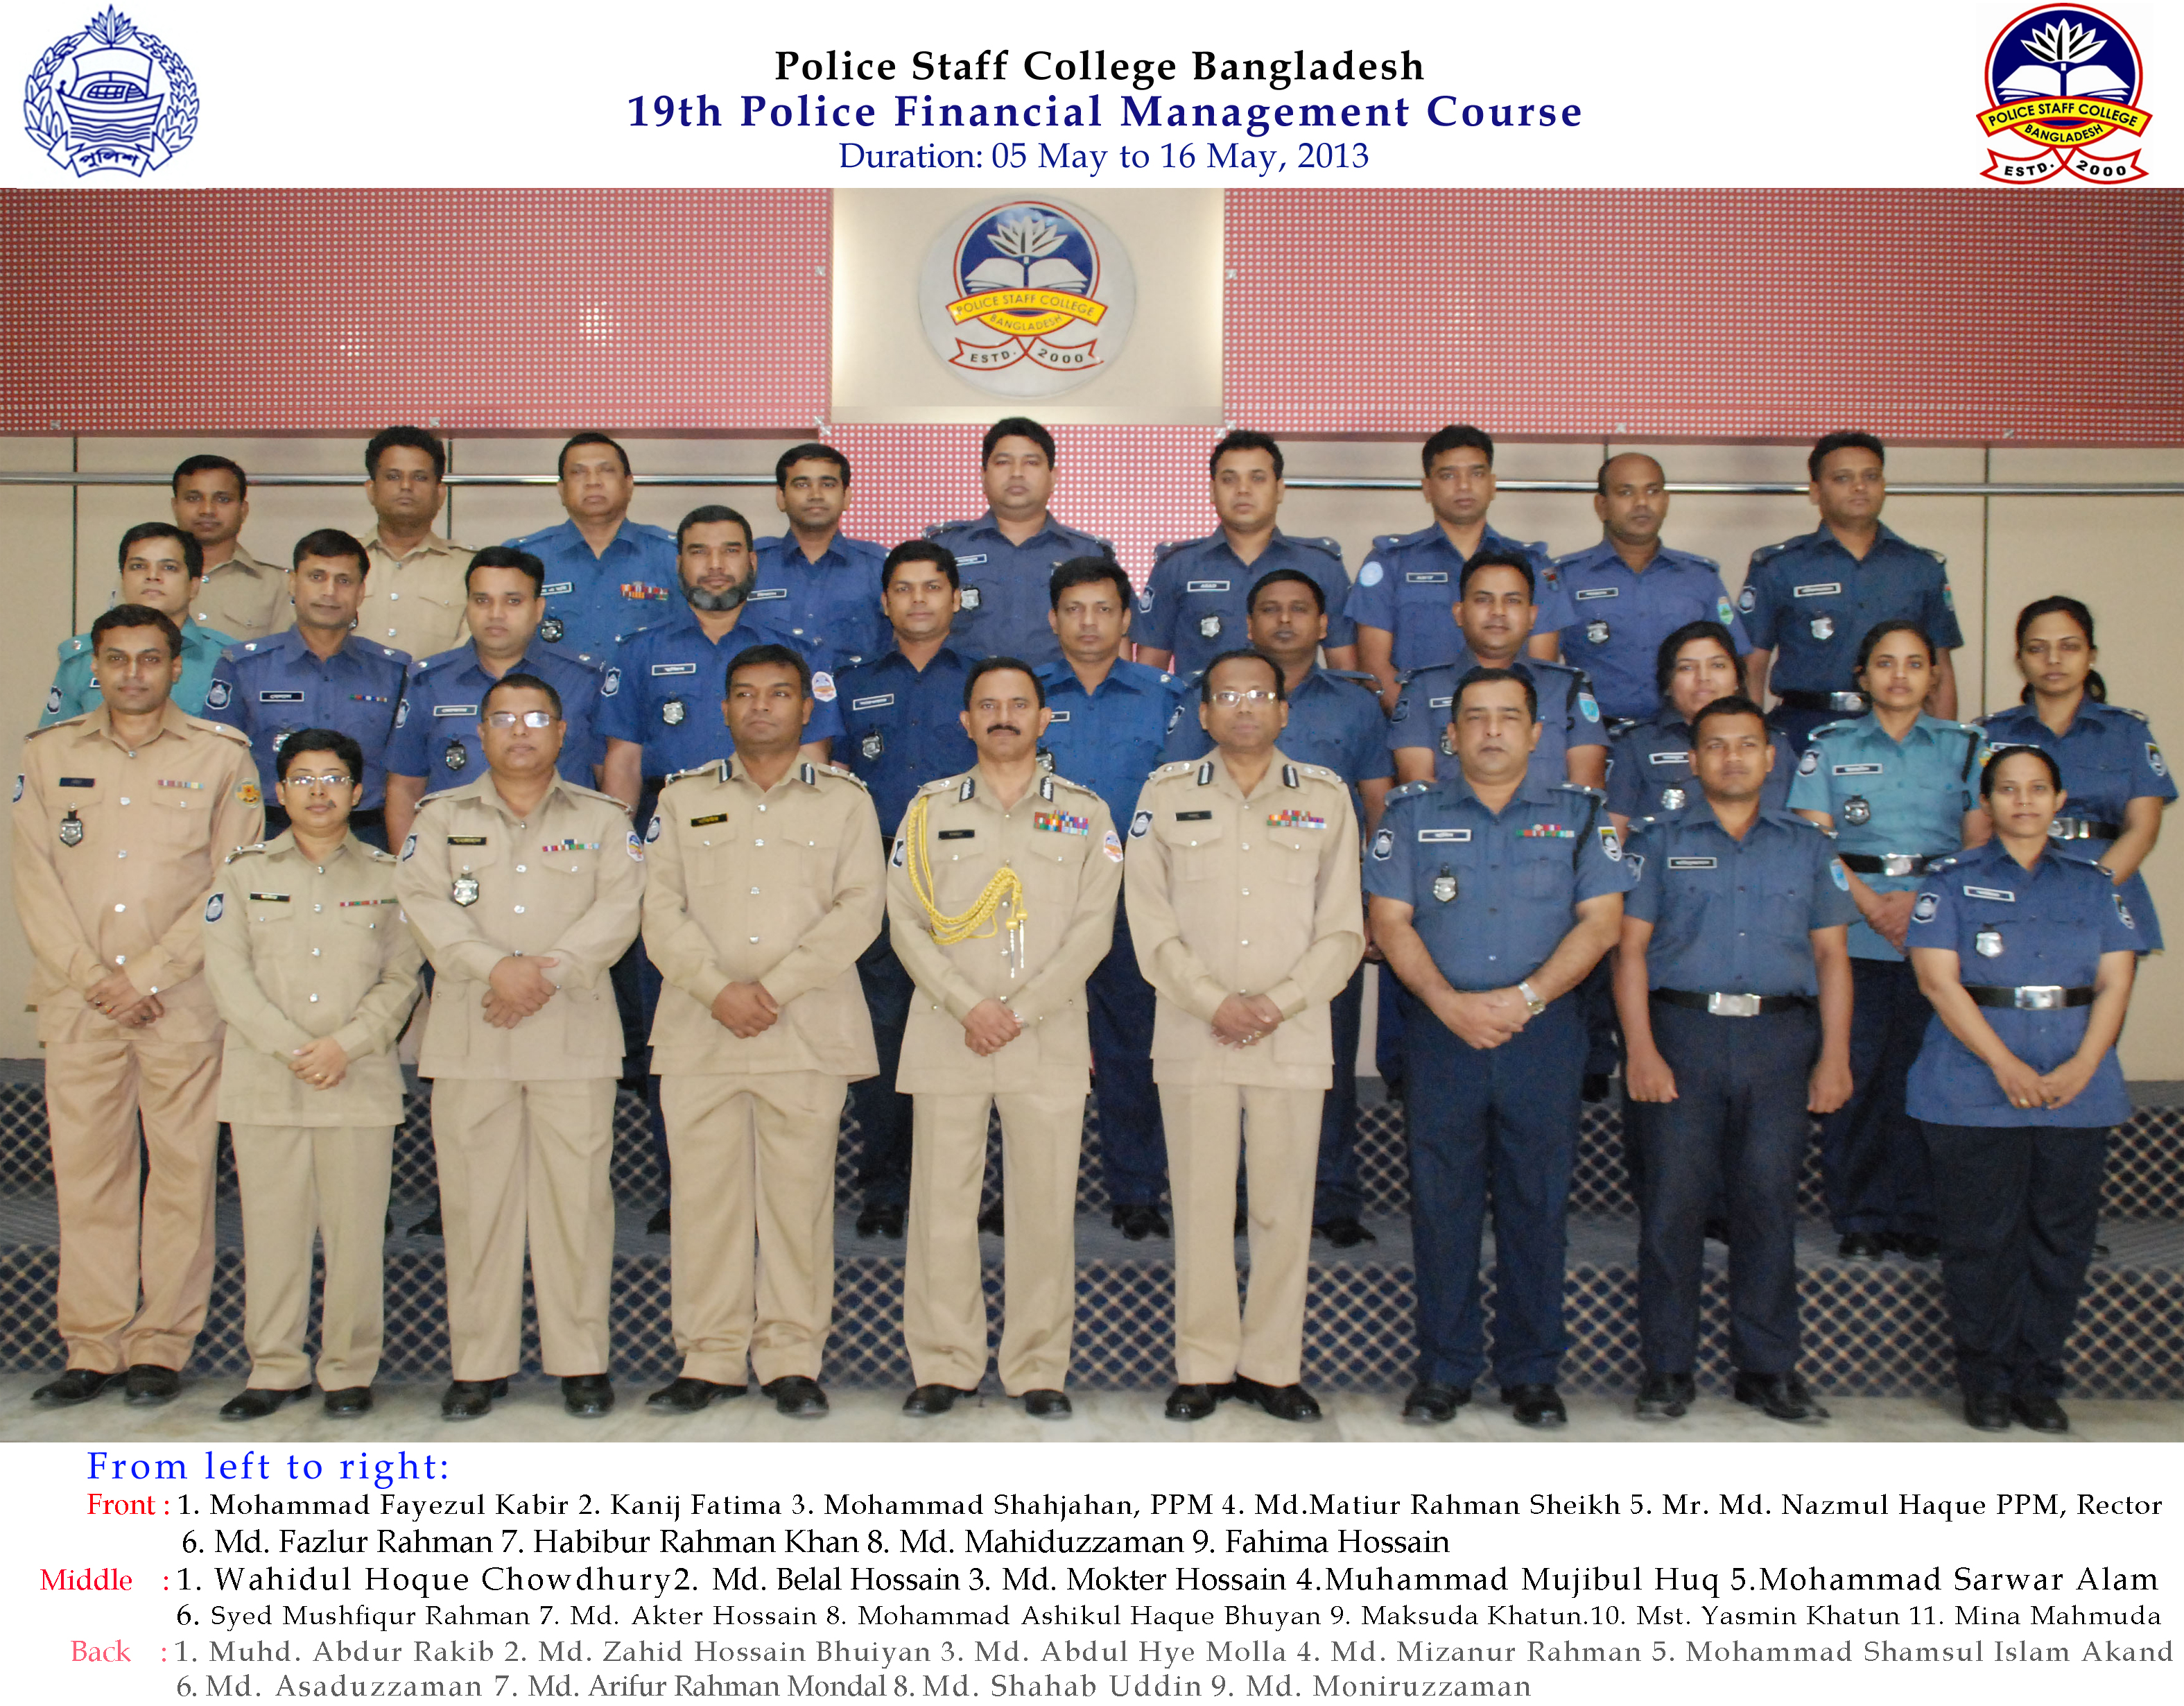 Participant of 19th Police Financial Management Certificate Course.